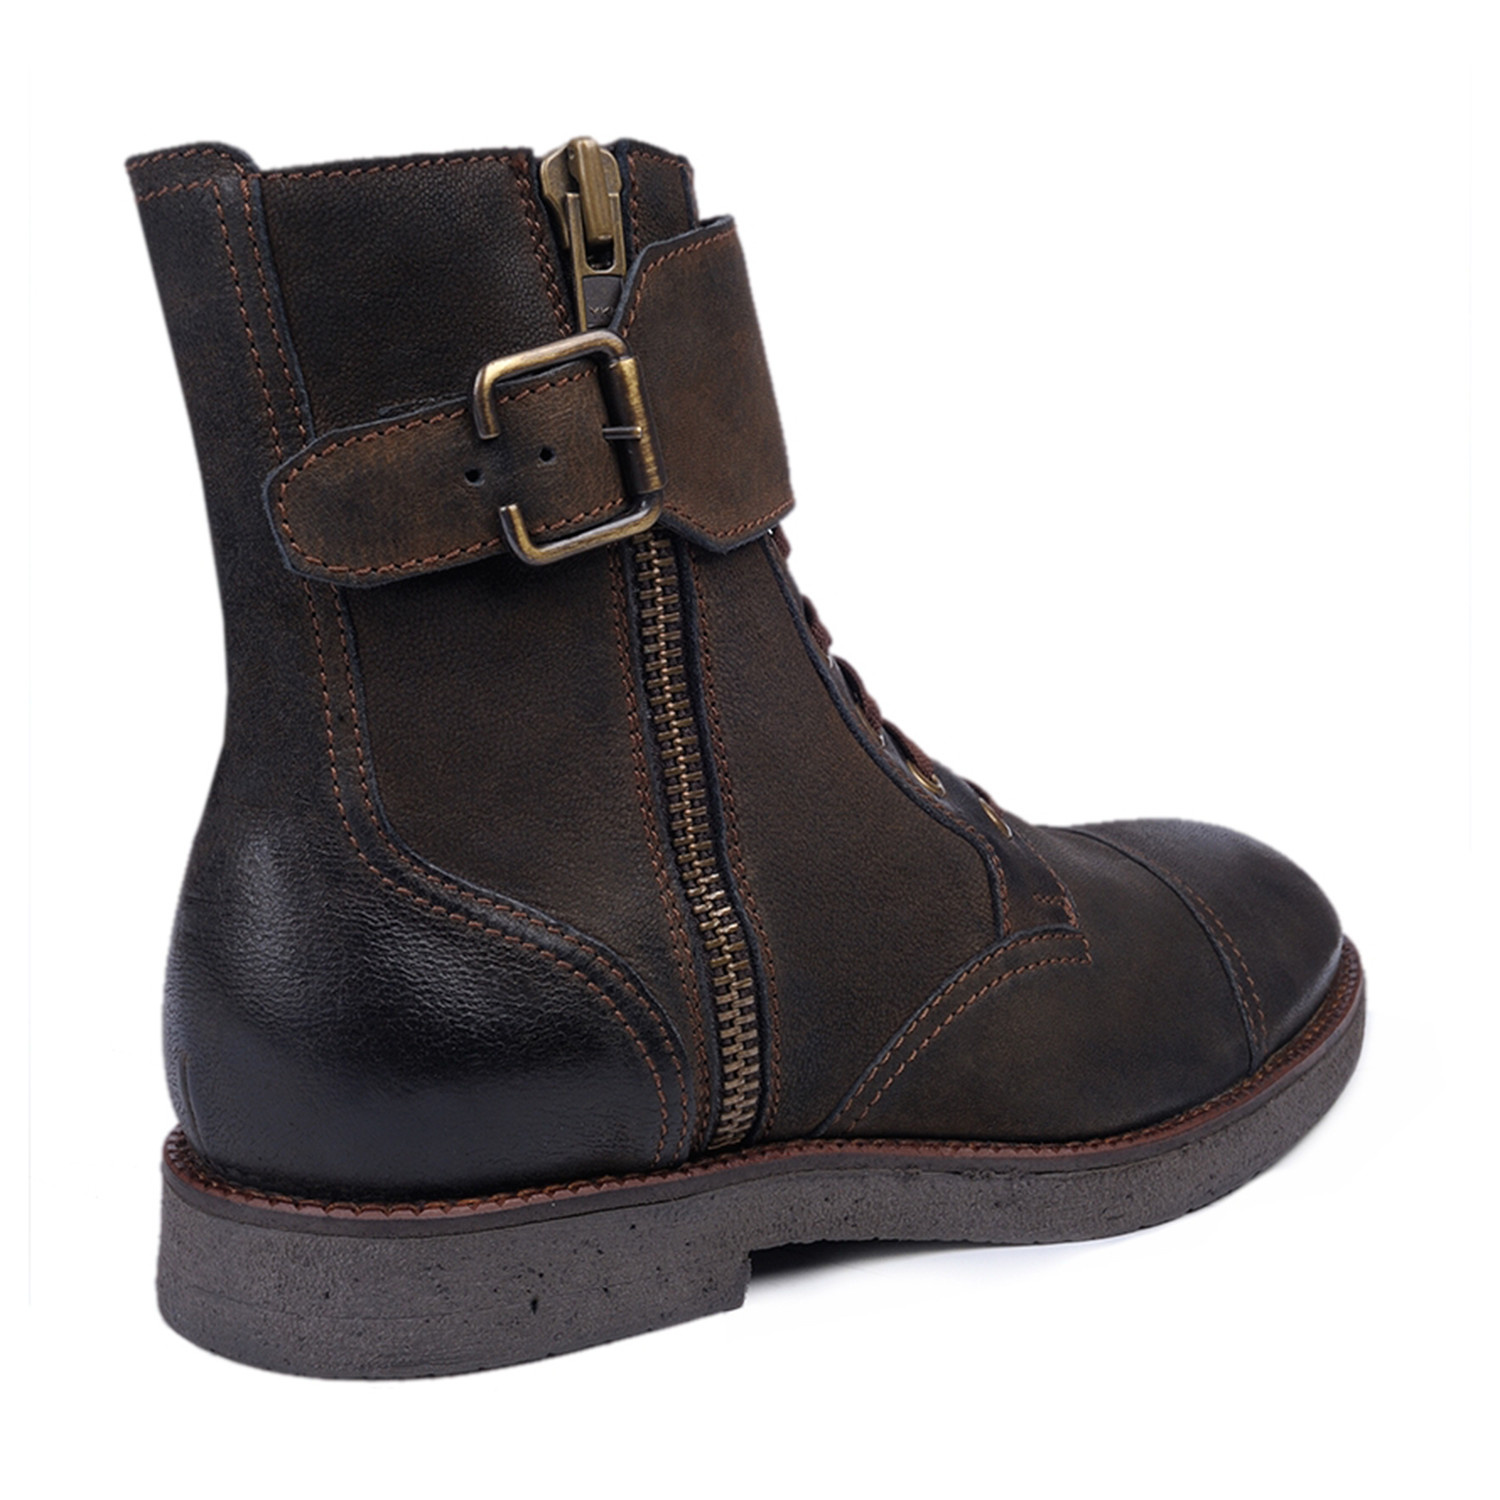 Gino Rossi Shoes Price